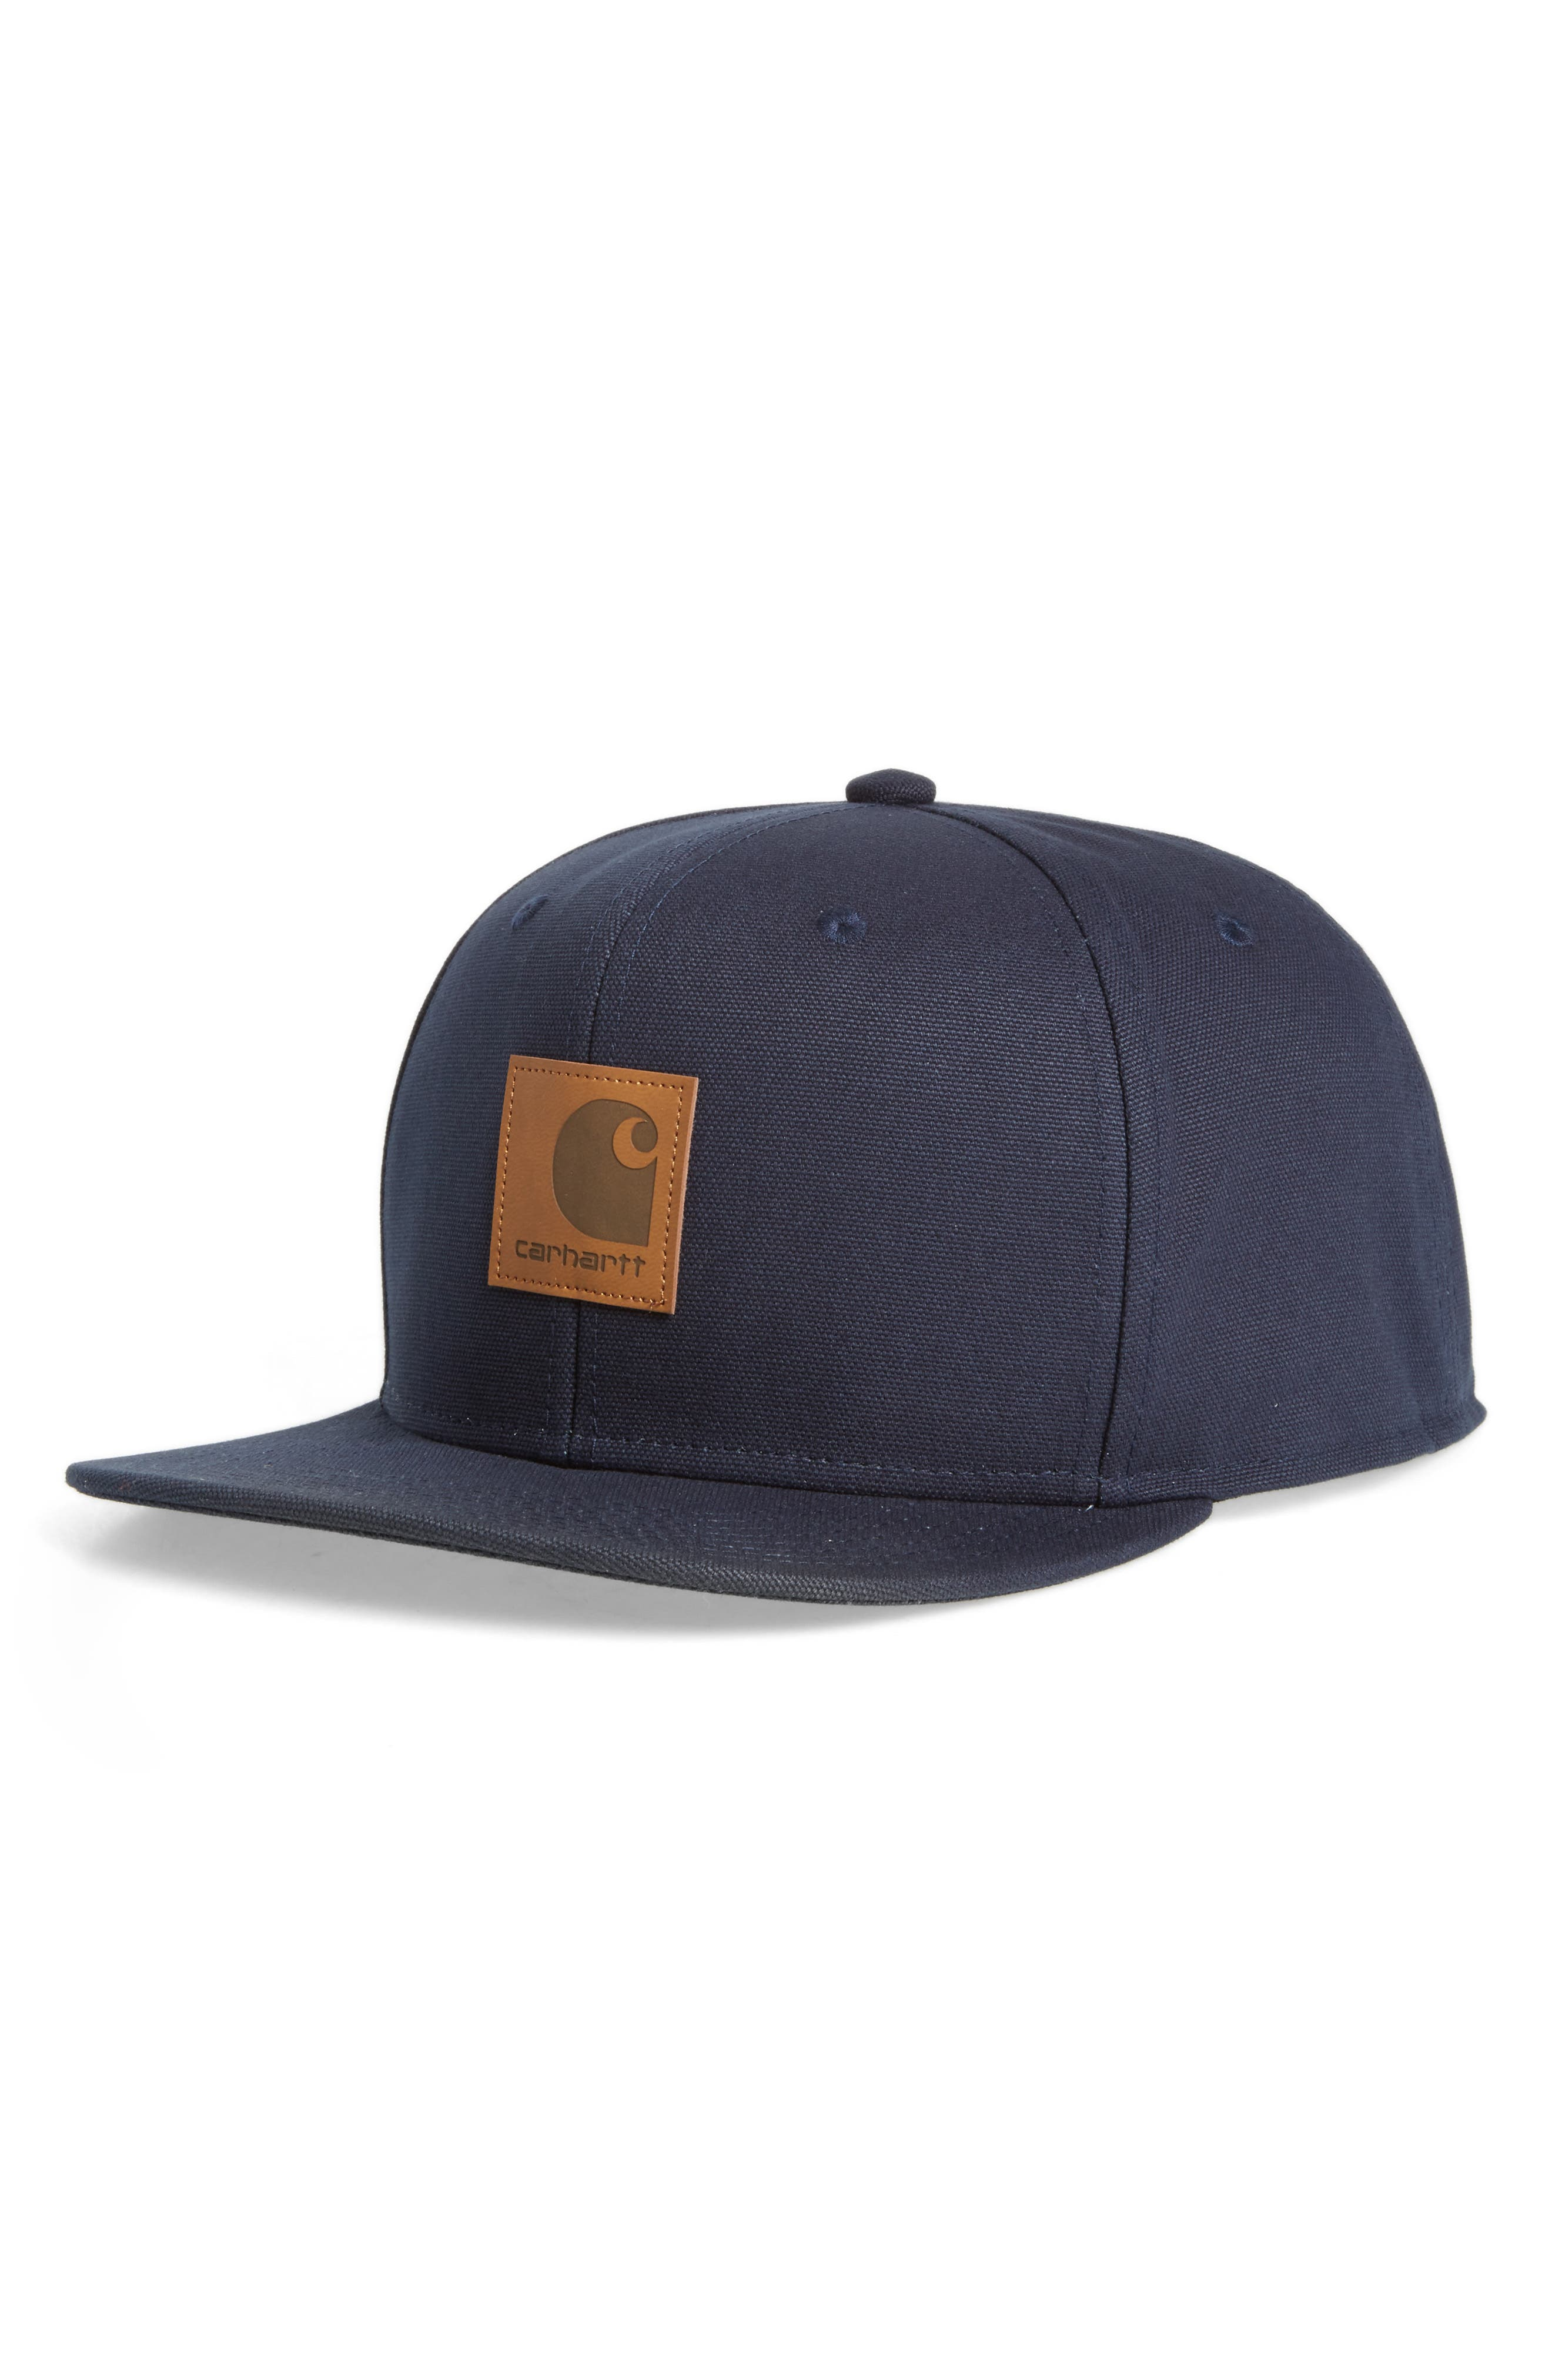 Main Image - Carhartt Work in Progress Snapback Cap